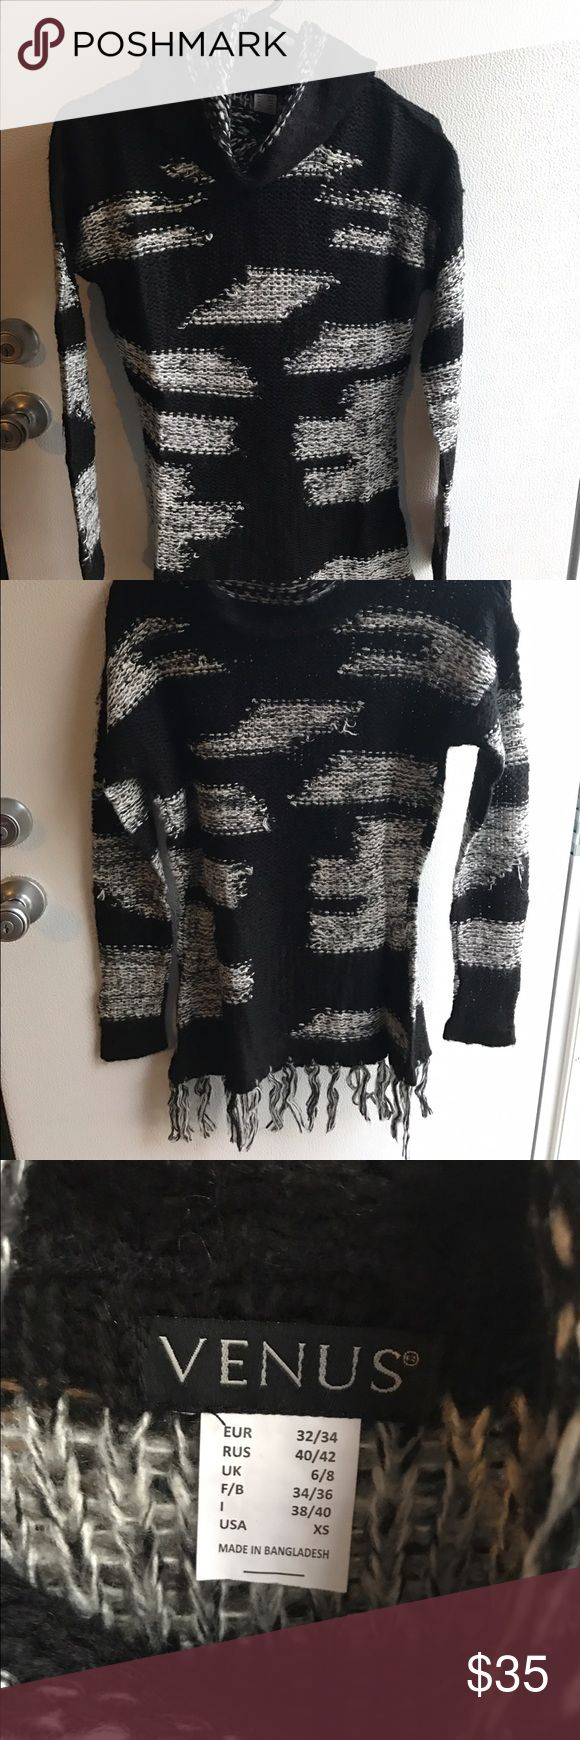 Venus Brand New never been worn Fringe Blouse Brand New never been worn tags still on black and white turtle neck Blouse. It's a great buy and gift ! I have one and Love it ! They ended up sending me 2 so I'm selling this one ! Venus Sweaters Crew & Scoop Necks